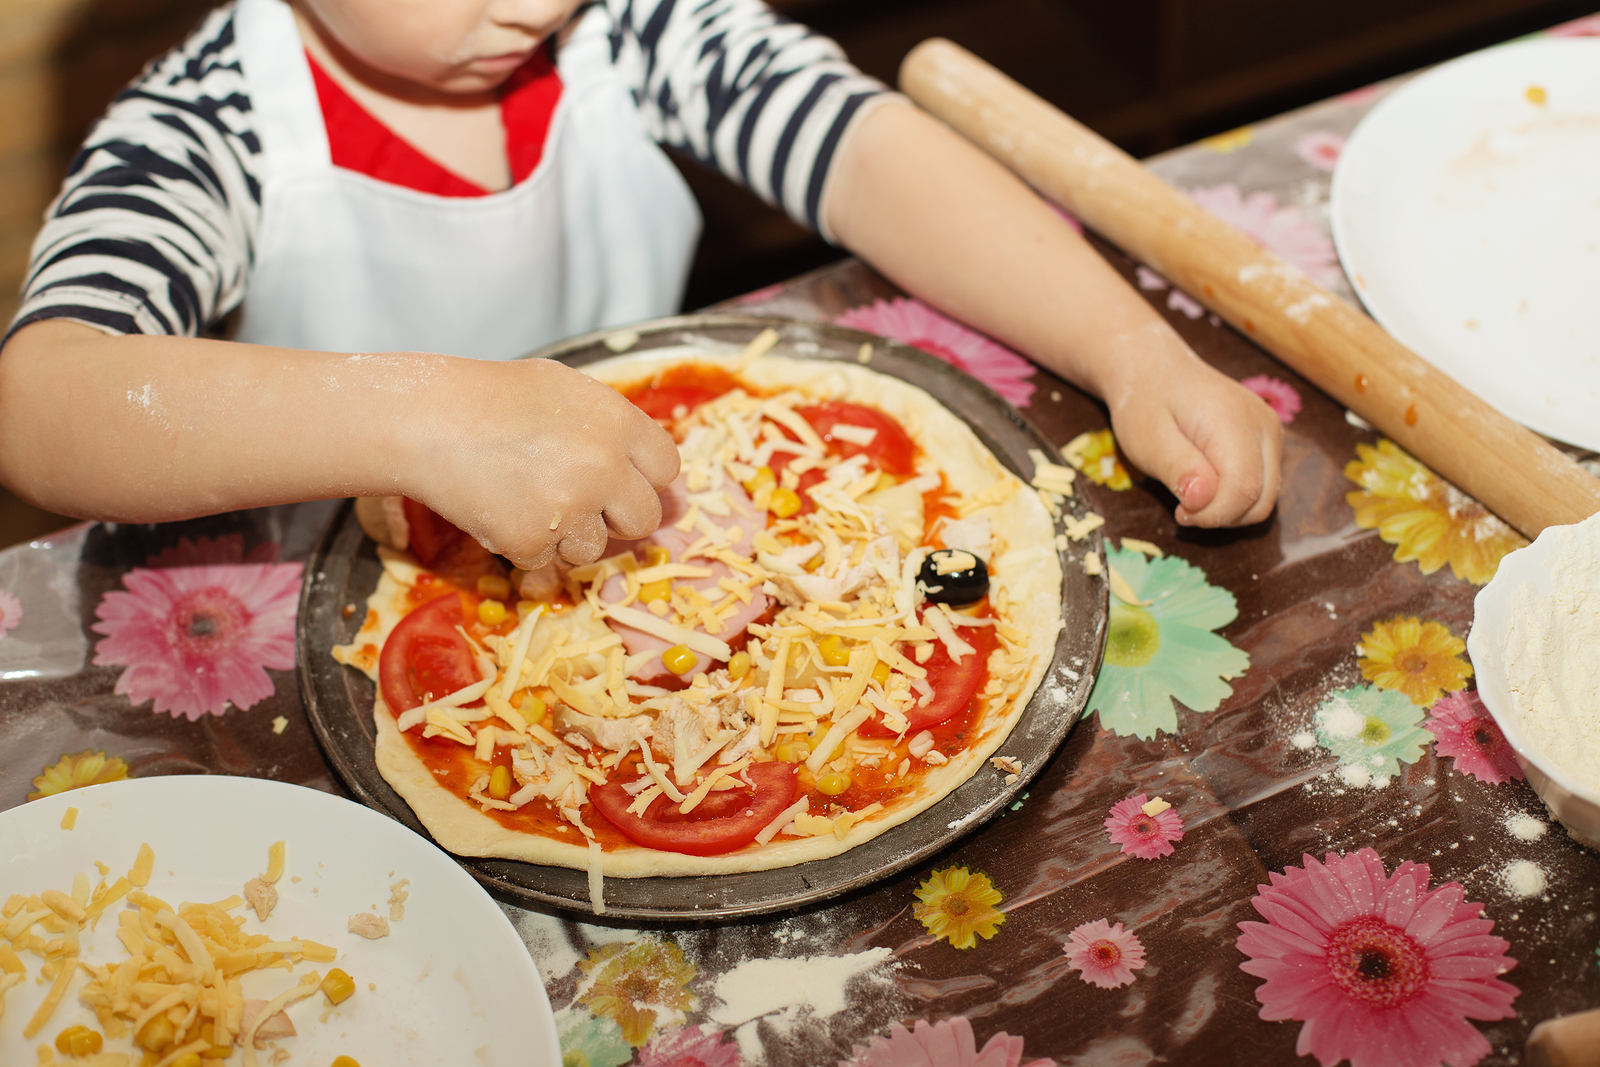 For kids learning to cook, safety is the first lesson!